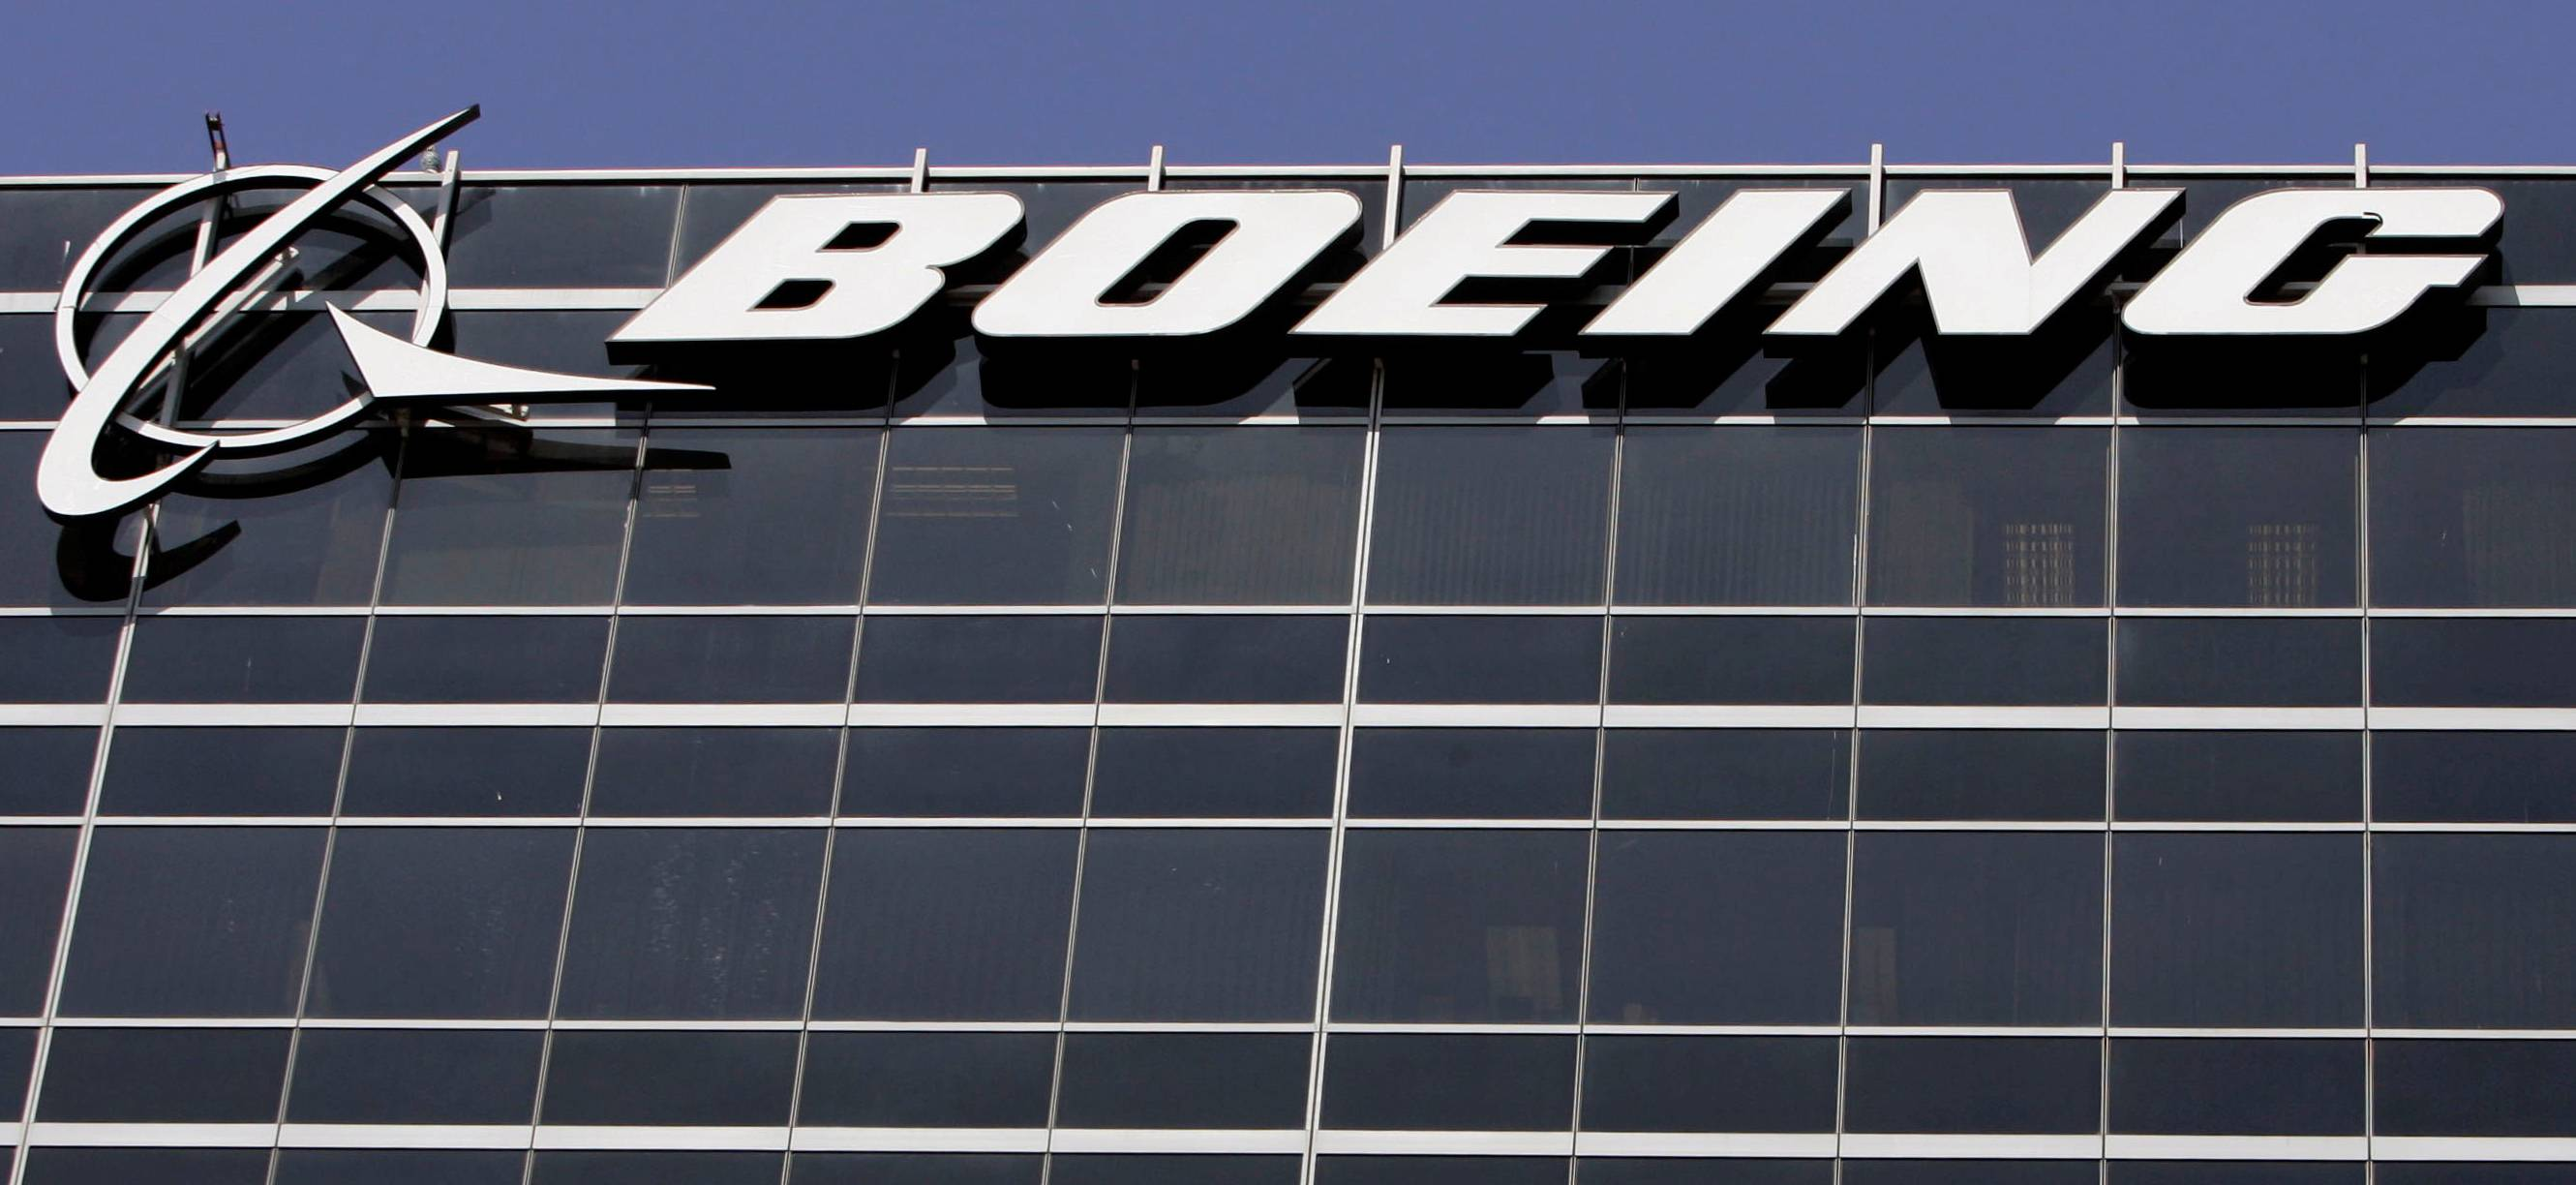 Chicago-based Boeing Co. raised its full-year profit forecast as the world's biggest planemaker reaps gains from faster production that is driving jetliner deliveries to record levels.